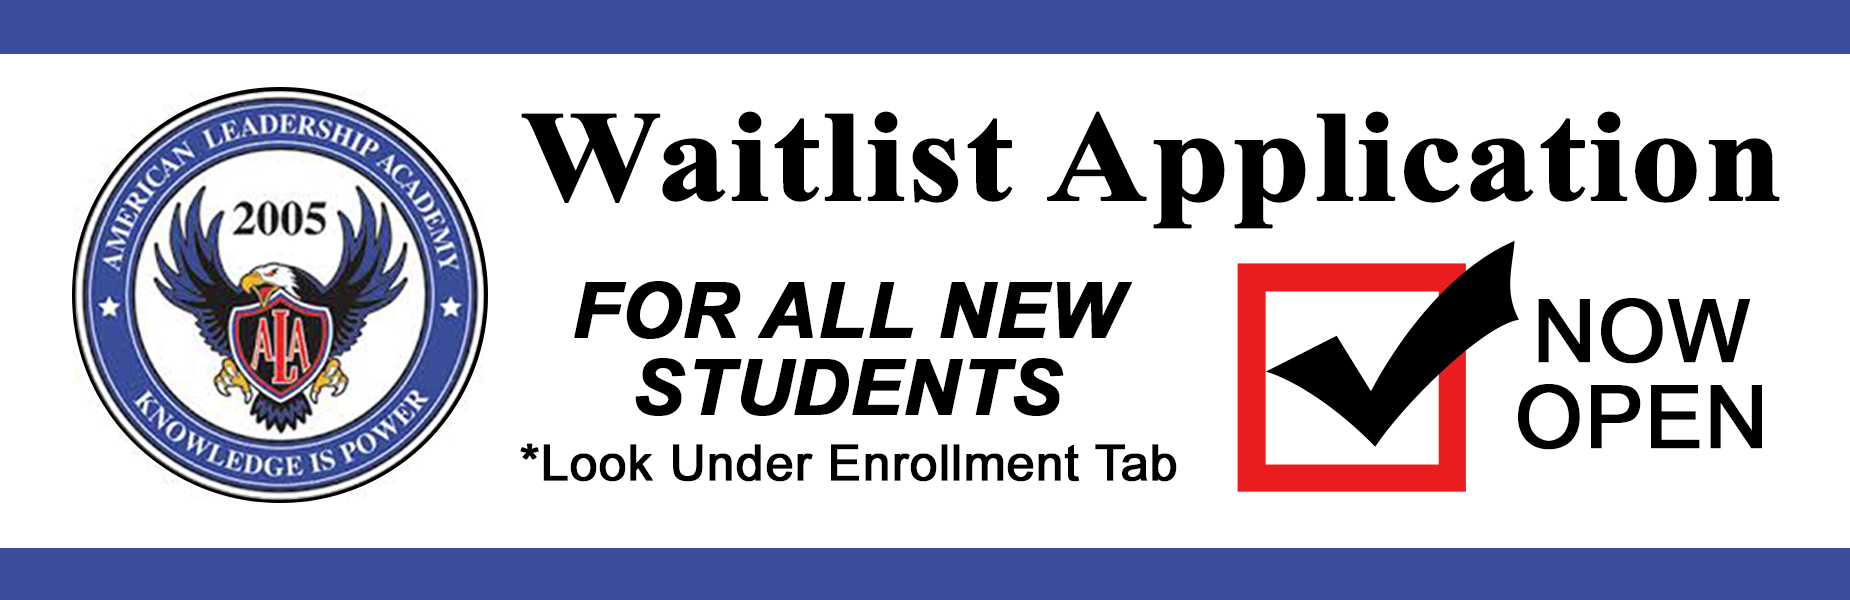 Waitlist-Application